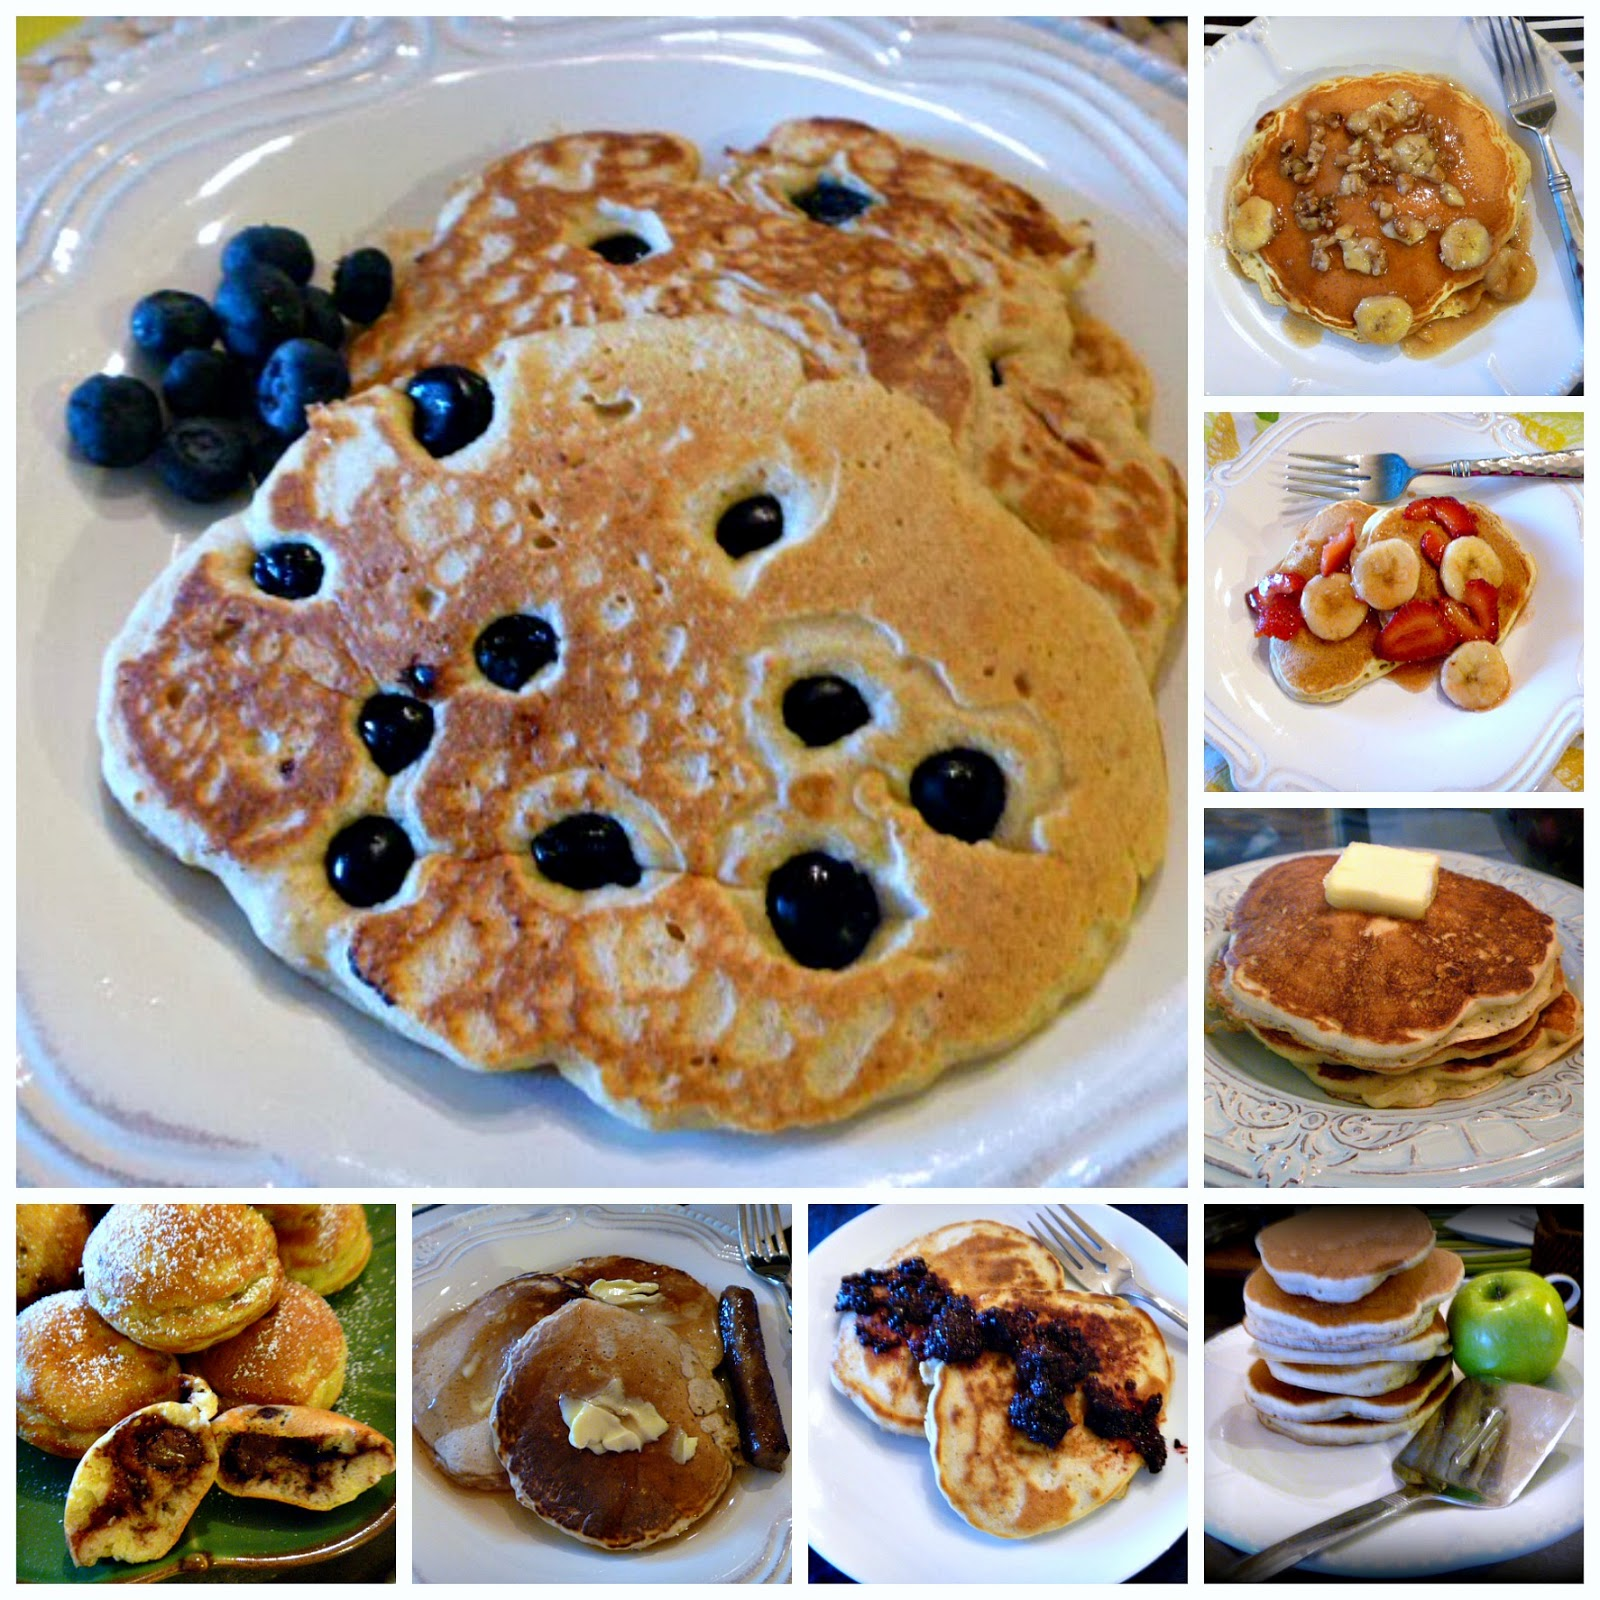 What's your favorite pancake?  Here are 8 deliscious pancake varities for you to choose from!  Celebrate Sunday, Mother's Day, or any day with family friendly comfort food. - Slice of Southern